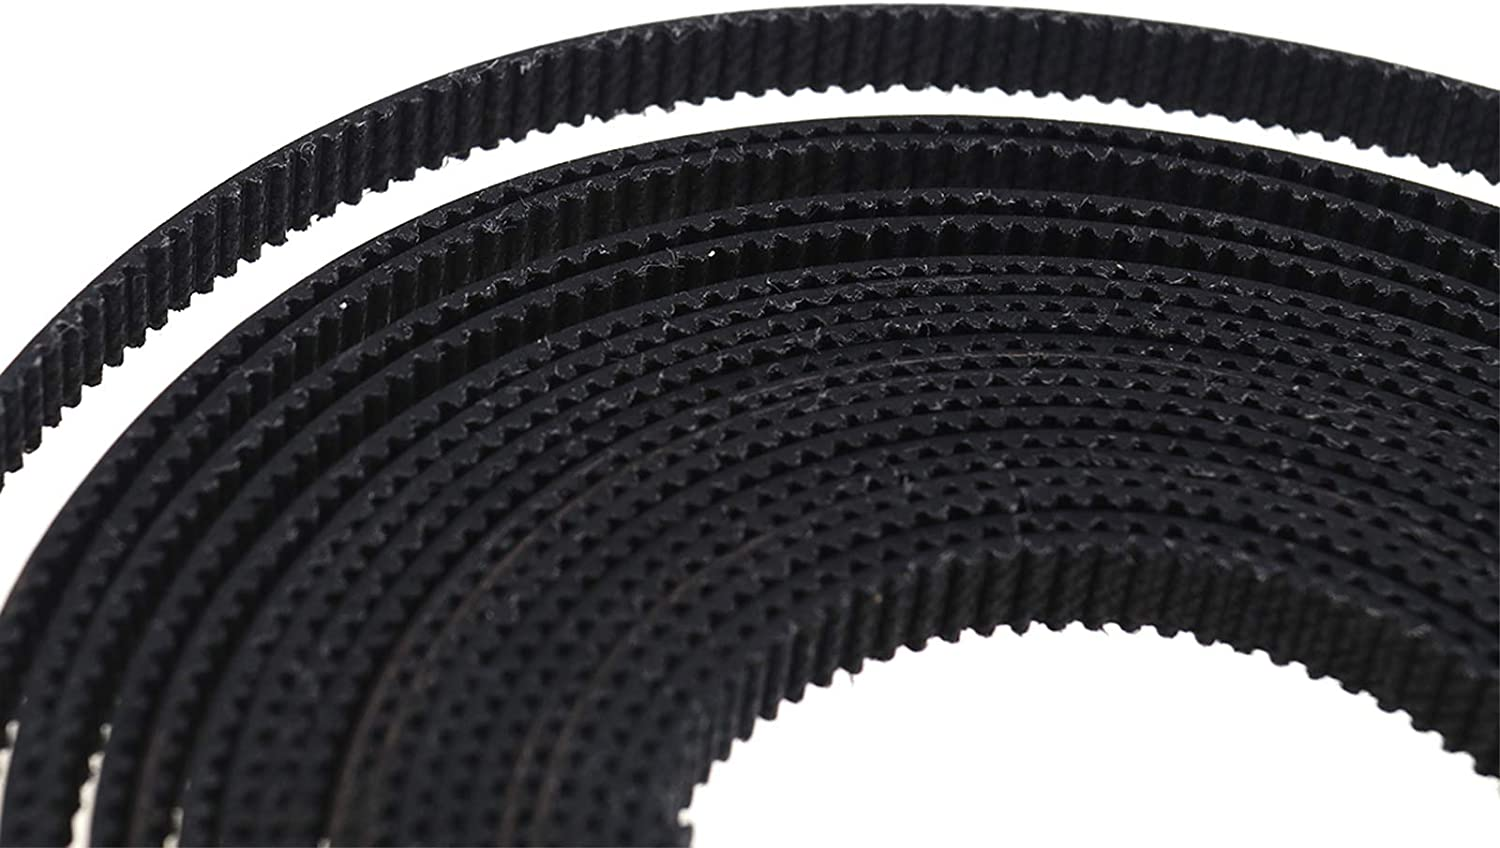 OTOTEC 10 Meters 32.8Ft GT2 2mm pitch 6mm wide Timing Belt for 3D printer CNC